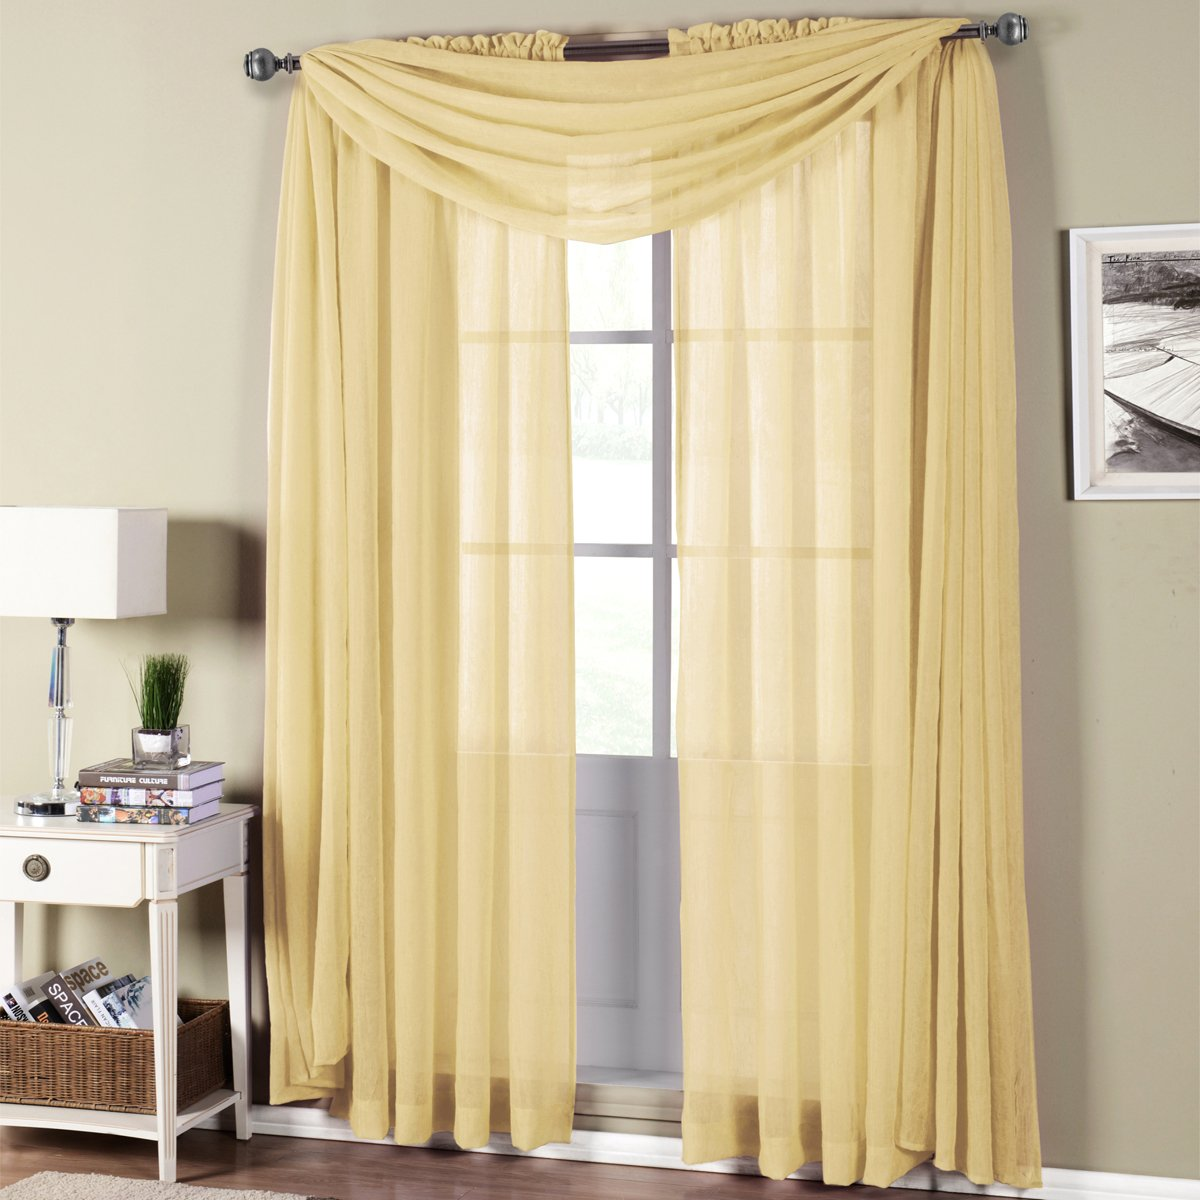 Abri White Rod Pocket Crushed Sheer Curtain Panel 50x63 Crisya In Mocca 37 Inches By Royal Hotel Home Kitchen